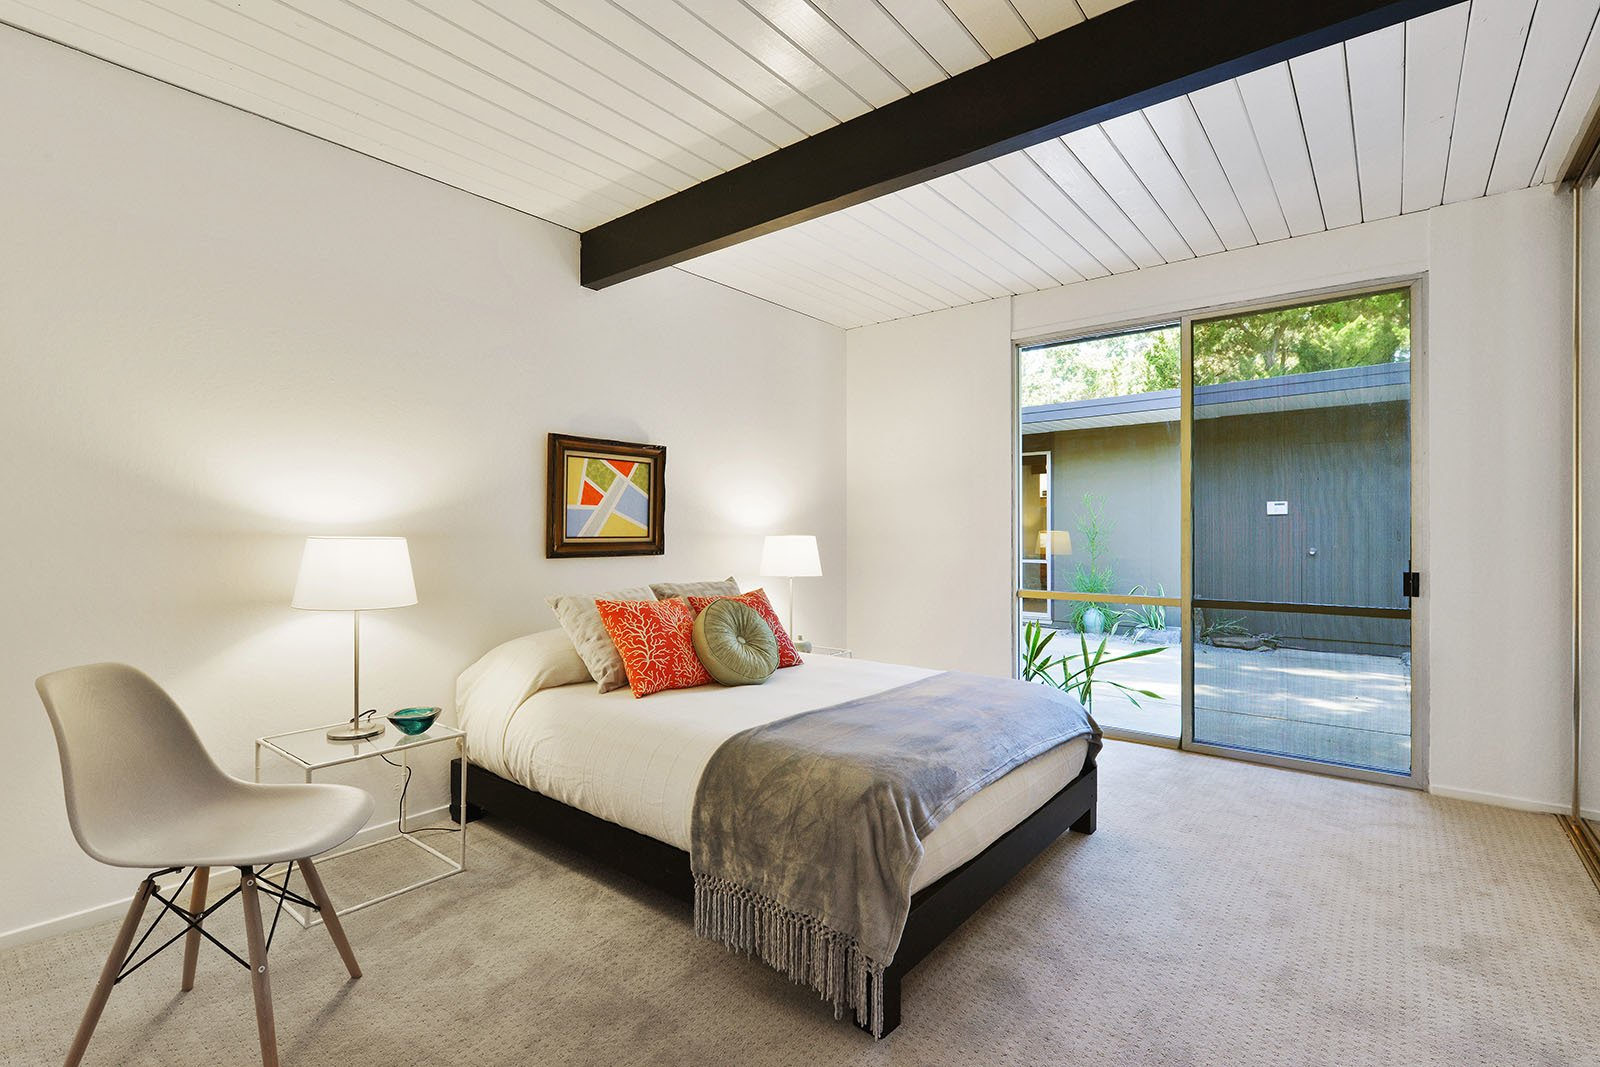 Bedroom  Photo 7 of 15 in An Enormous Bay Area Eichler Asks $1.45M